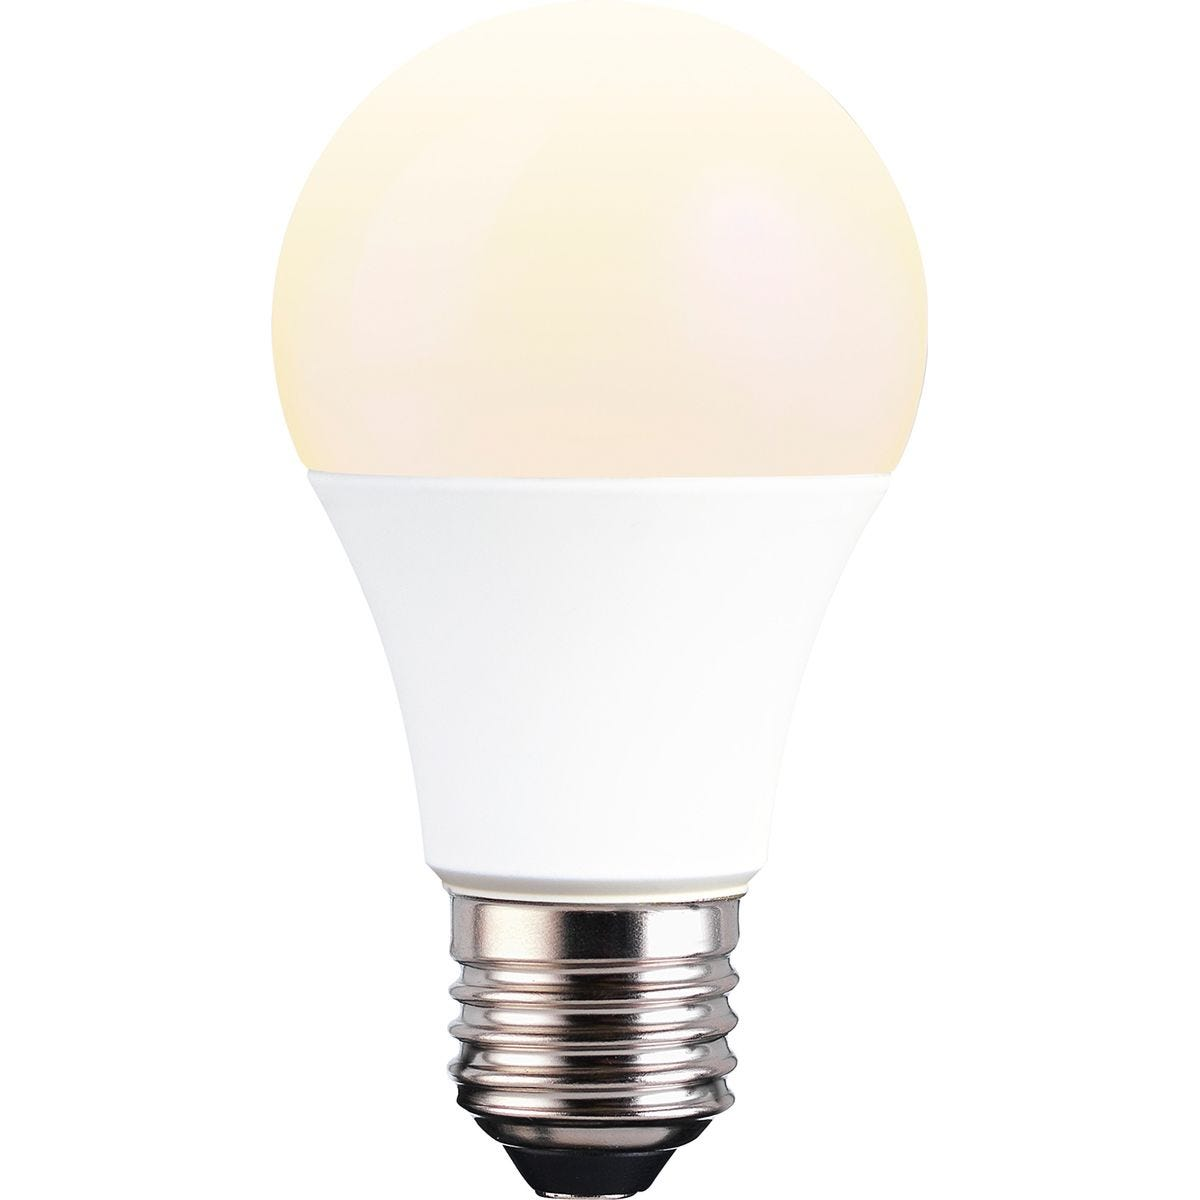 TCP Smart WiFi Dimmable Warm White LED Edison Screw 60W Light Bulb - No Hub Required